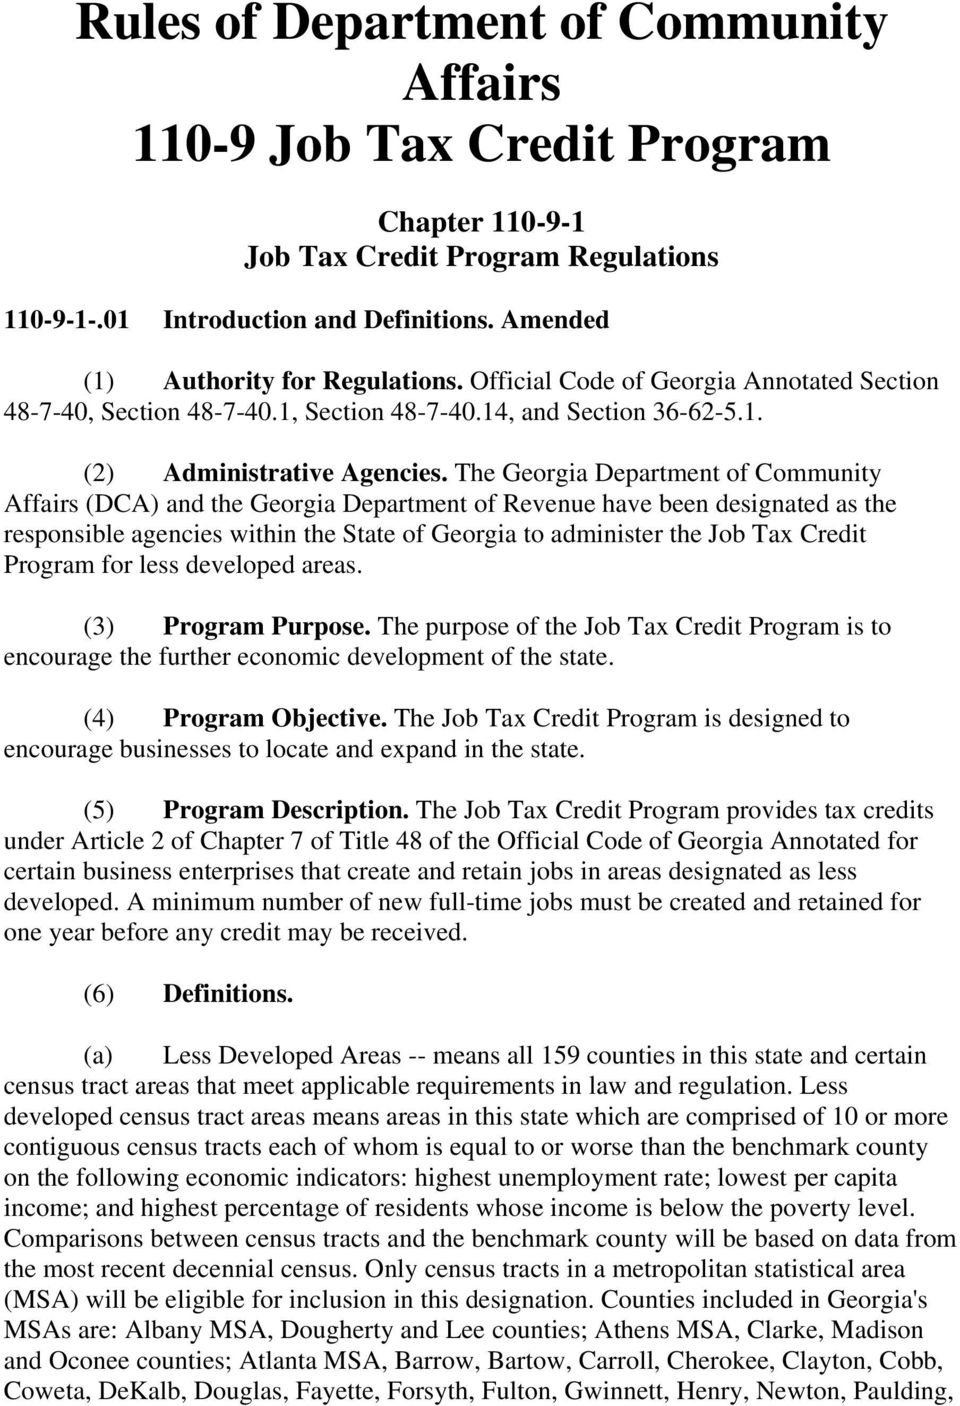 The Georgia Department of Community Affairs (DCA) and the Georgia Department of Revenue have been designated as the responsible agencies within the State of Georgia to administer the Job Tax Credit